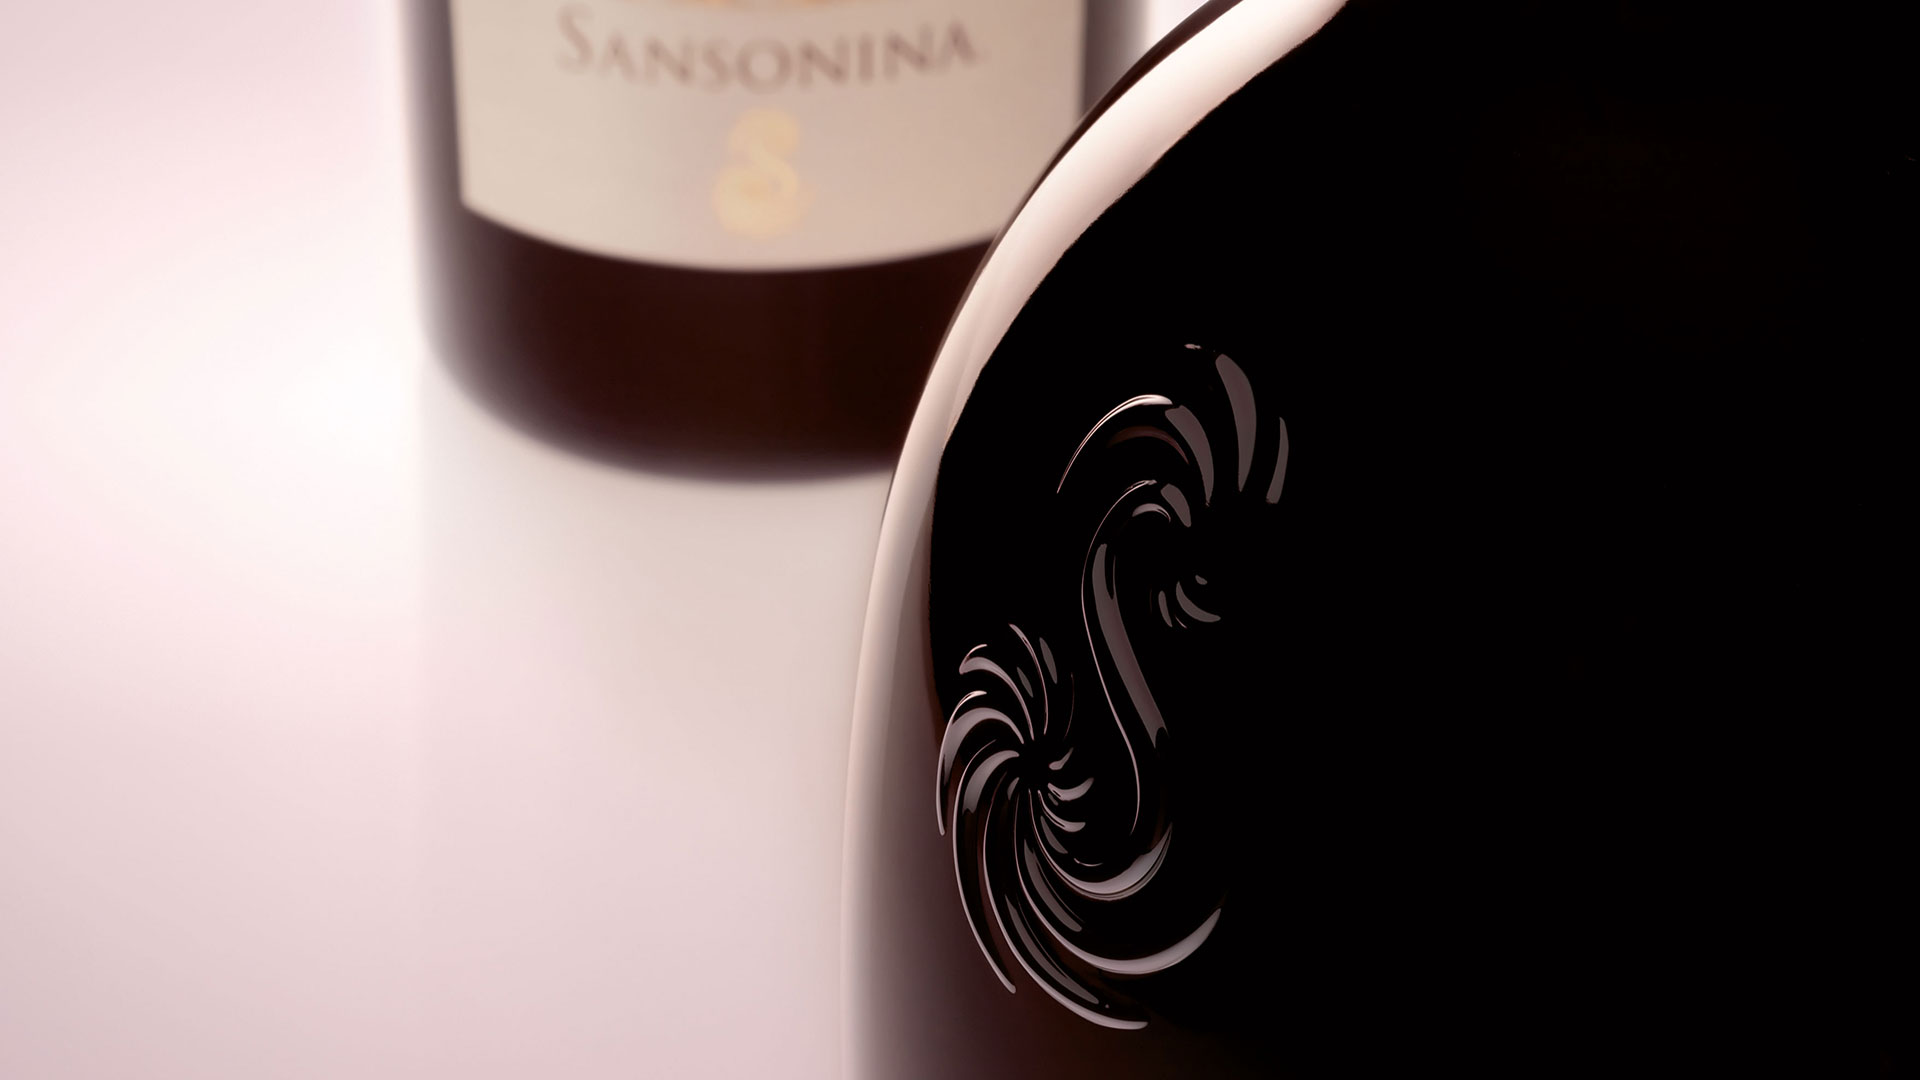 Sansonina closeup bottle design